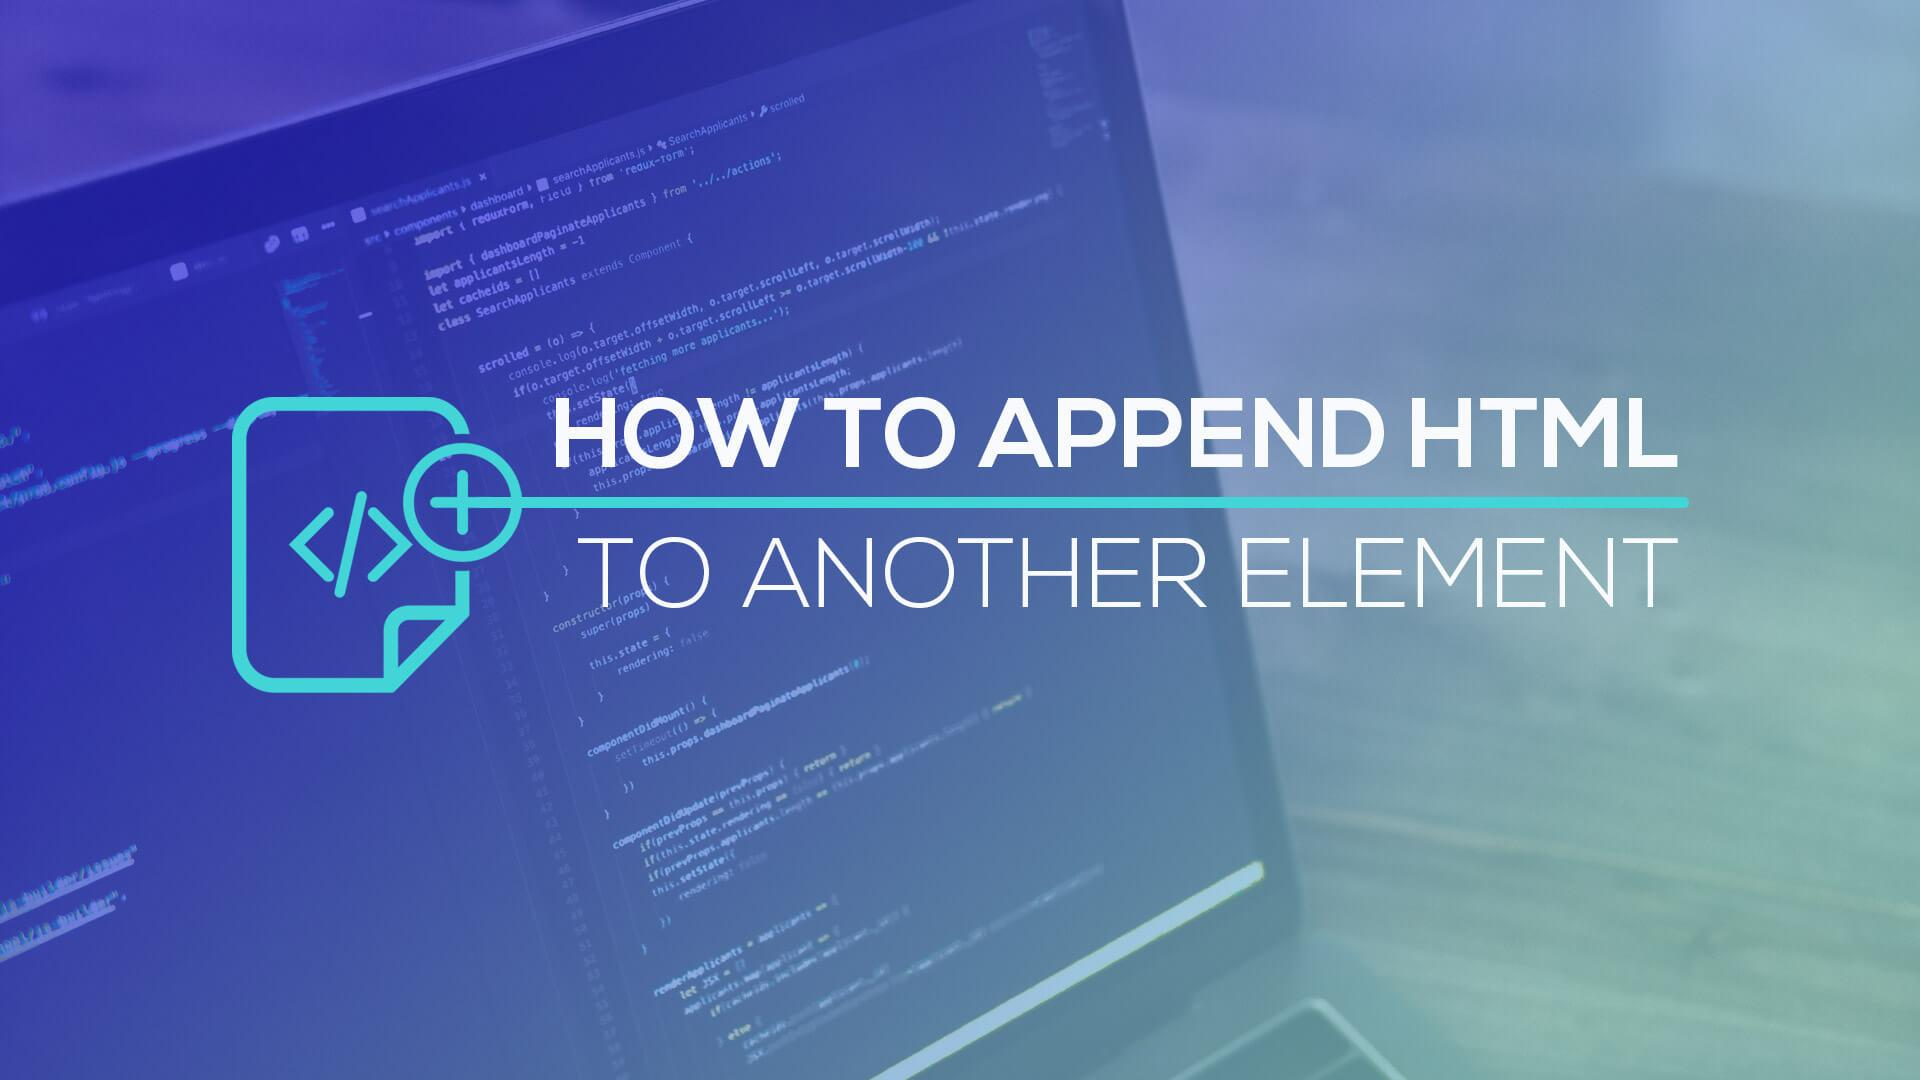 How to Append HTML to Another Element